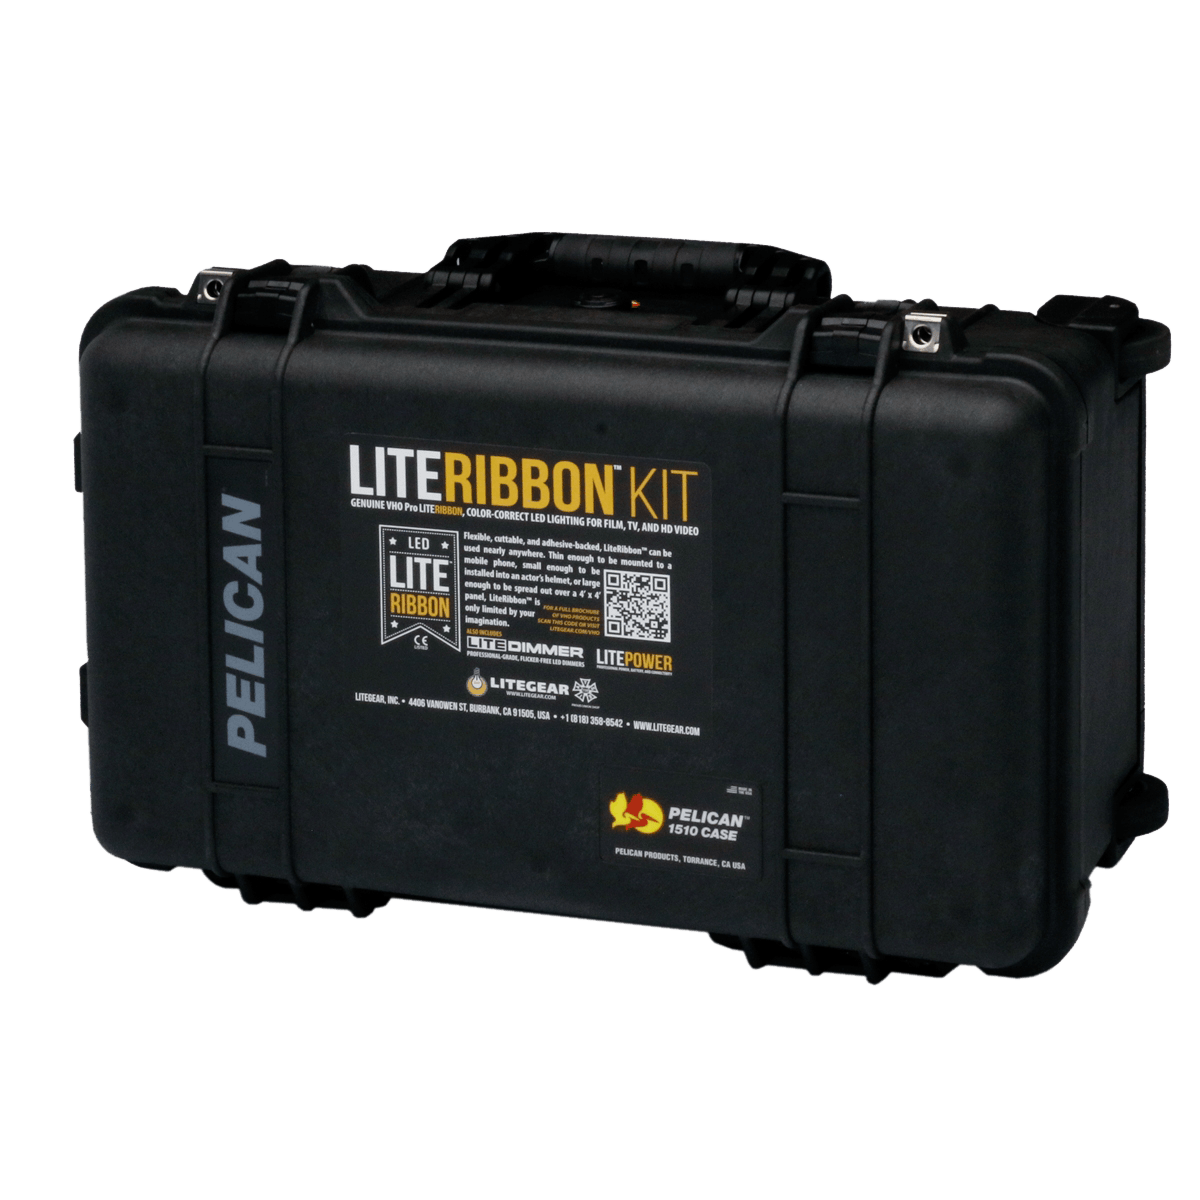 LiteGear LiteRibbon Pro Commercial Kit